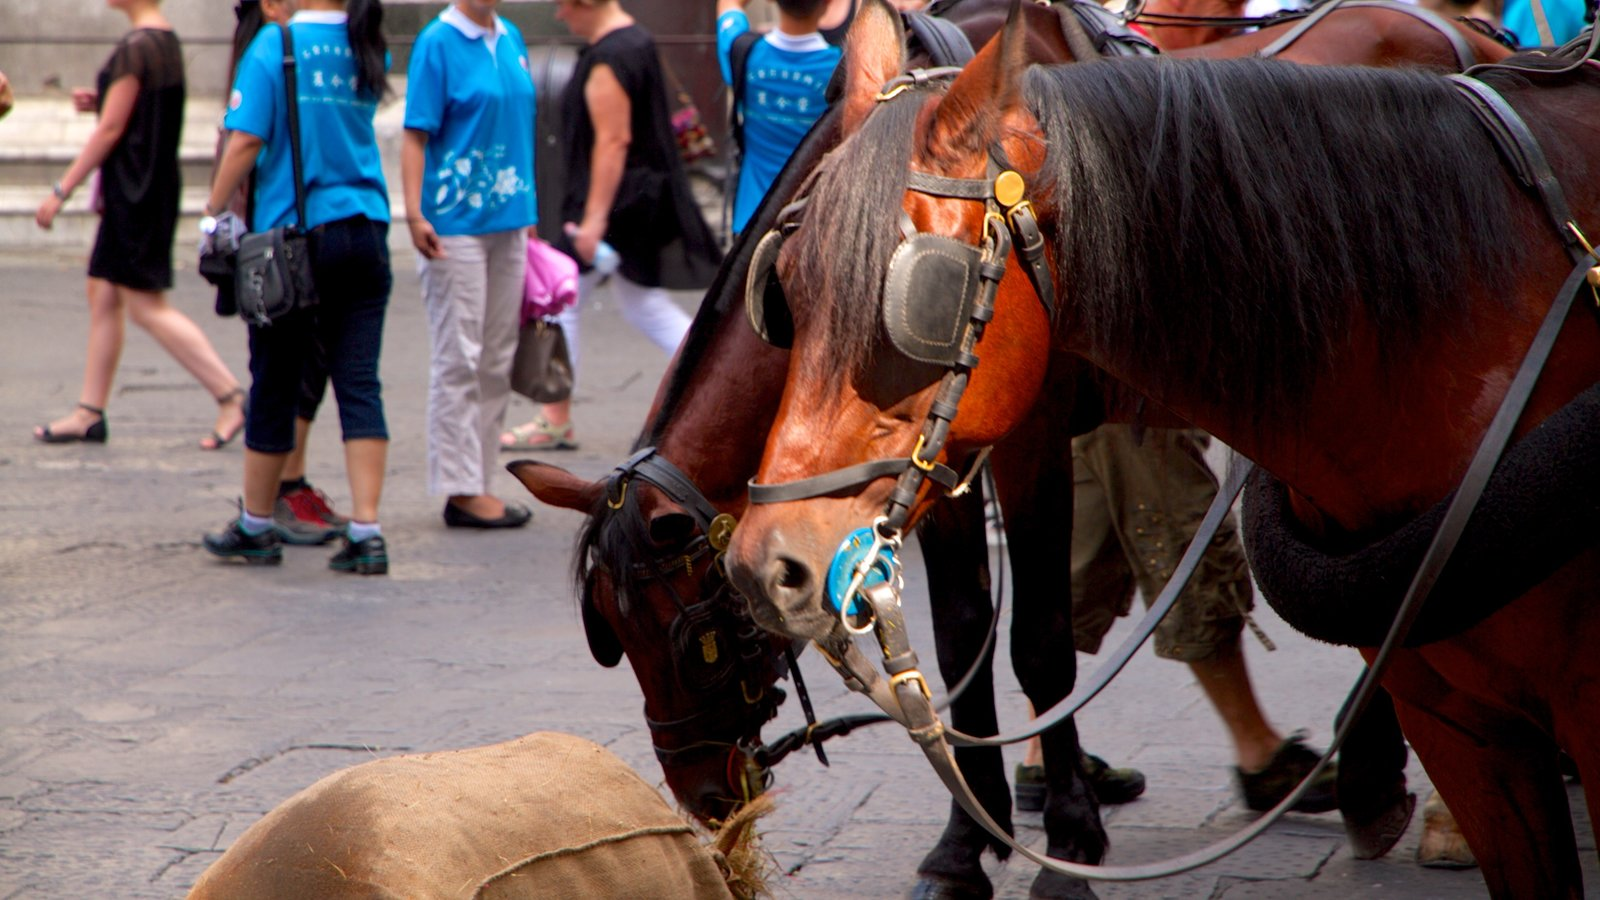 Piazza del Duomo which includes land animals as well as a small group of people